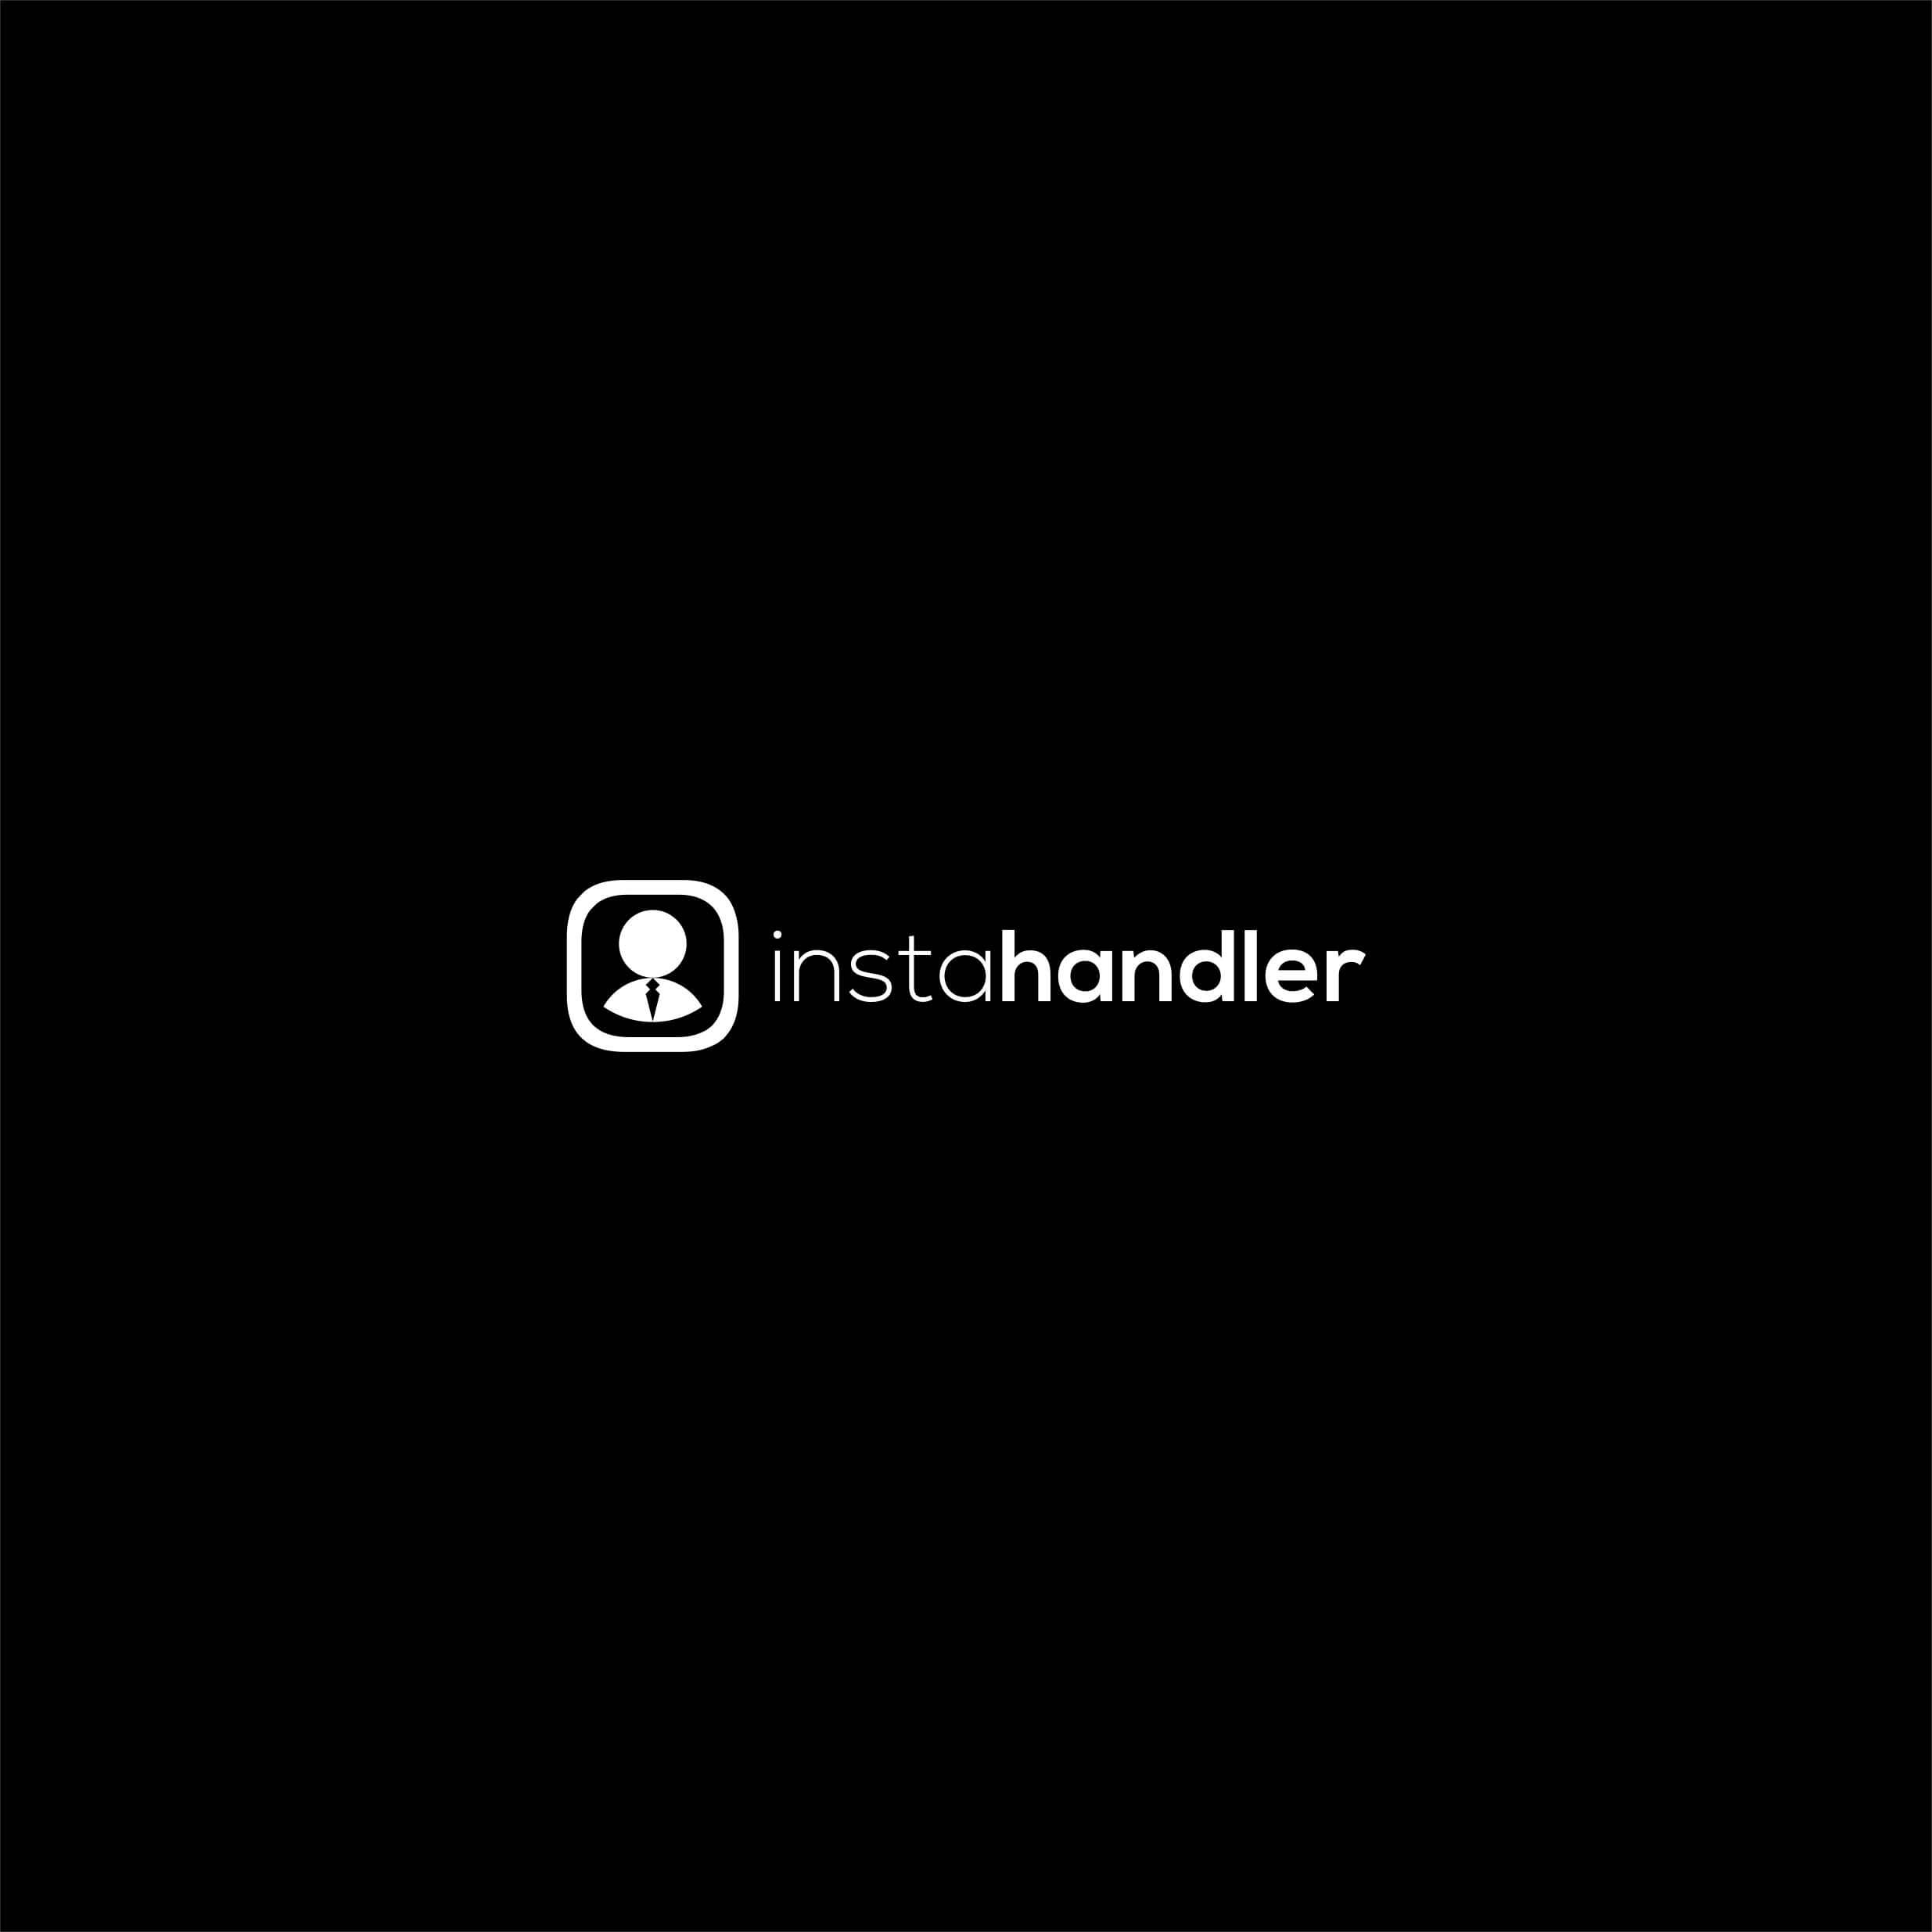 InstaHandler Logo Design - Web Application For Instagram